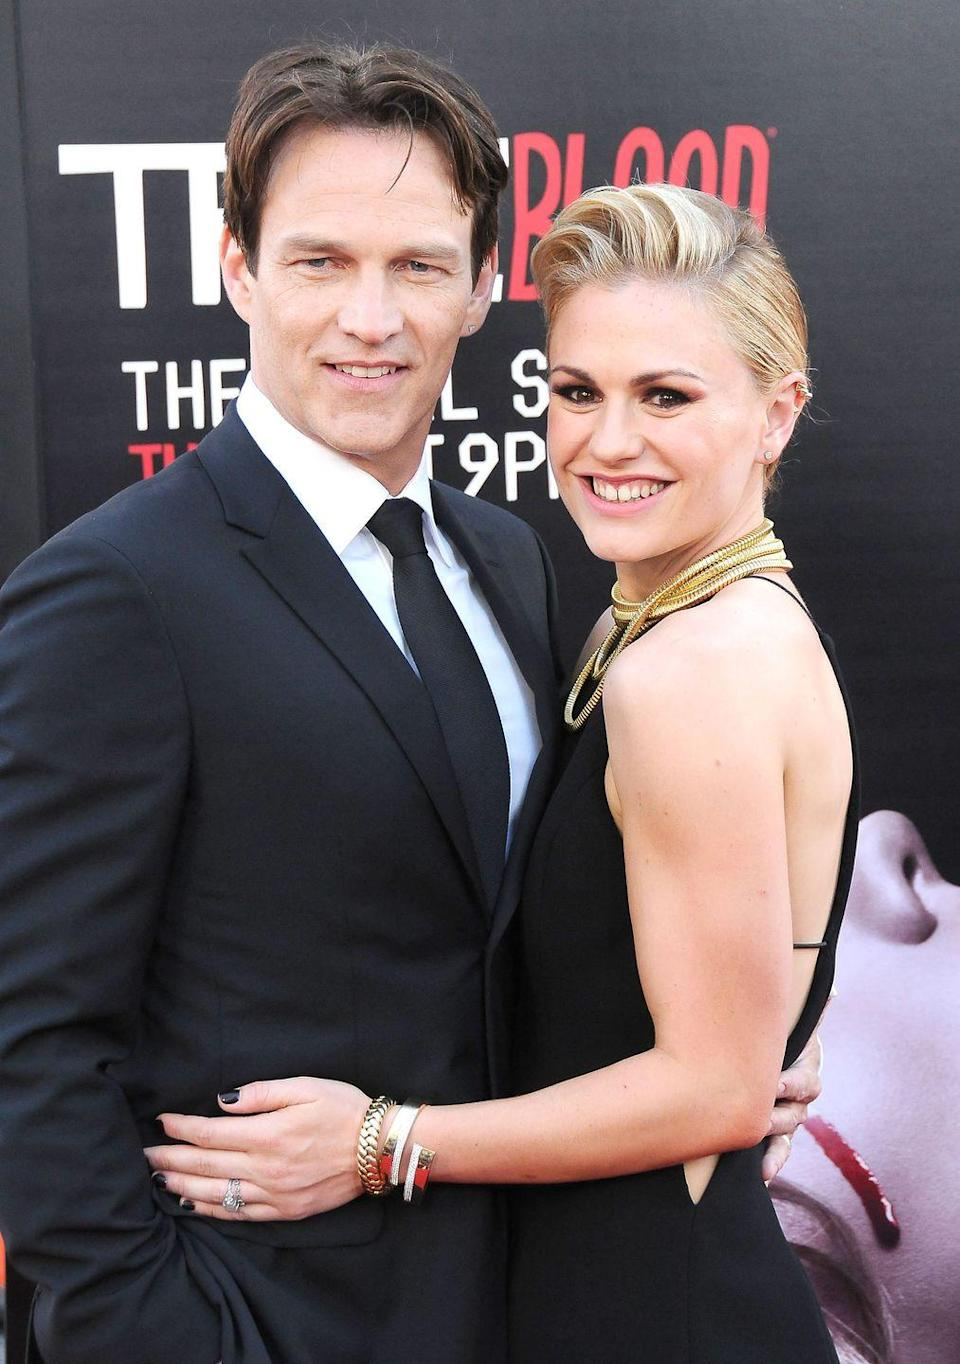 <p><strong>Age gap: </strong>13 years</p><p>For these <em>True Blood </em>costars, it really was eternal love. Anna and Stephen began dating during their show's first season in 2008 and got married two years later. They are now parents to twins Charlie and Poppy.</p>